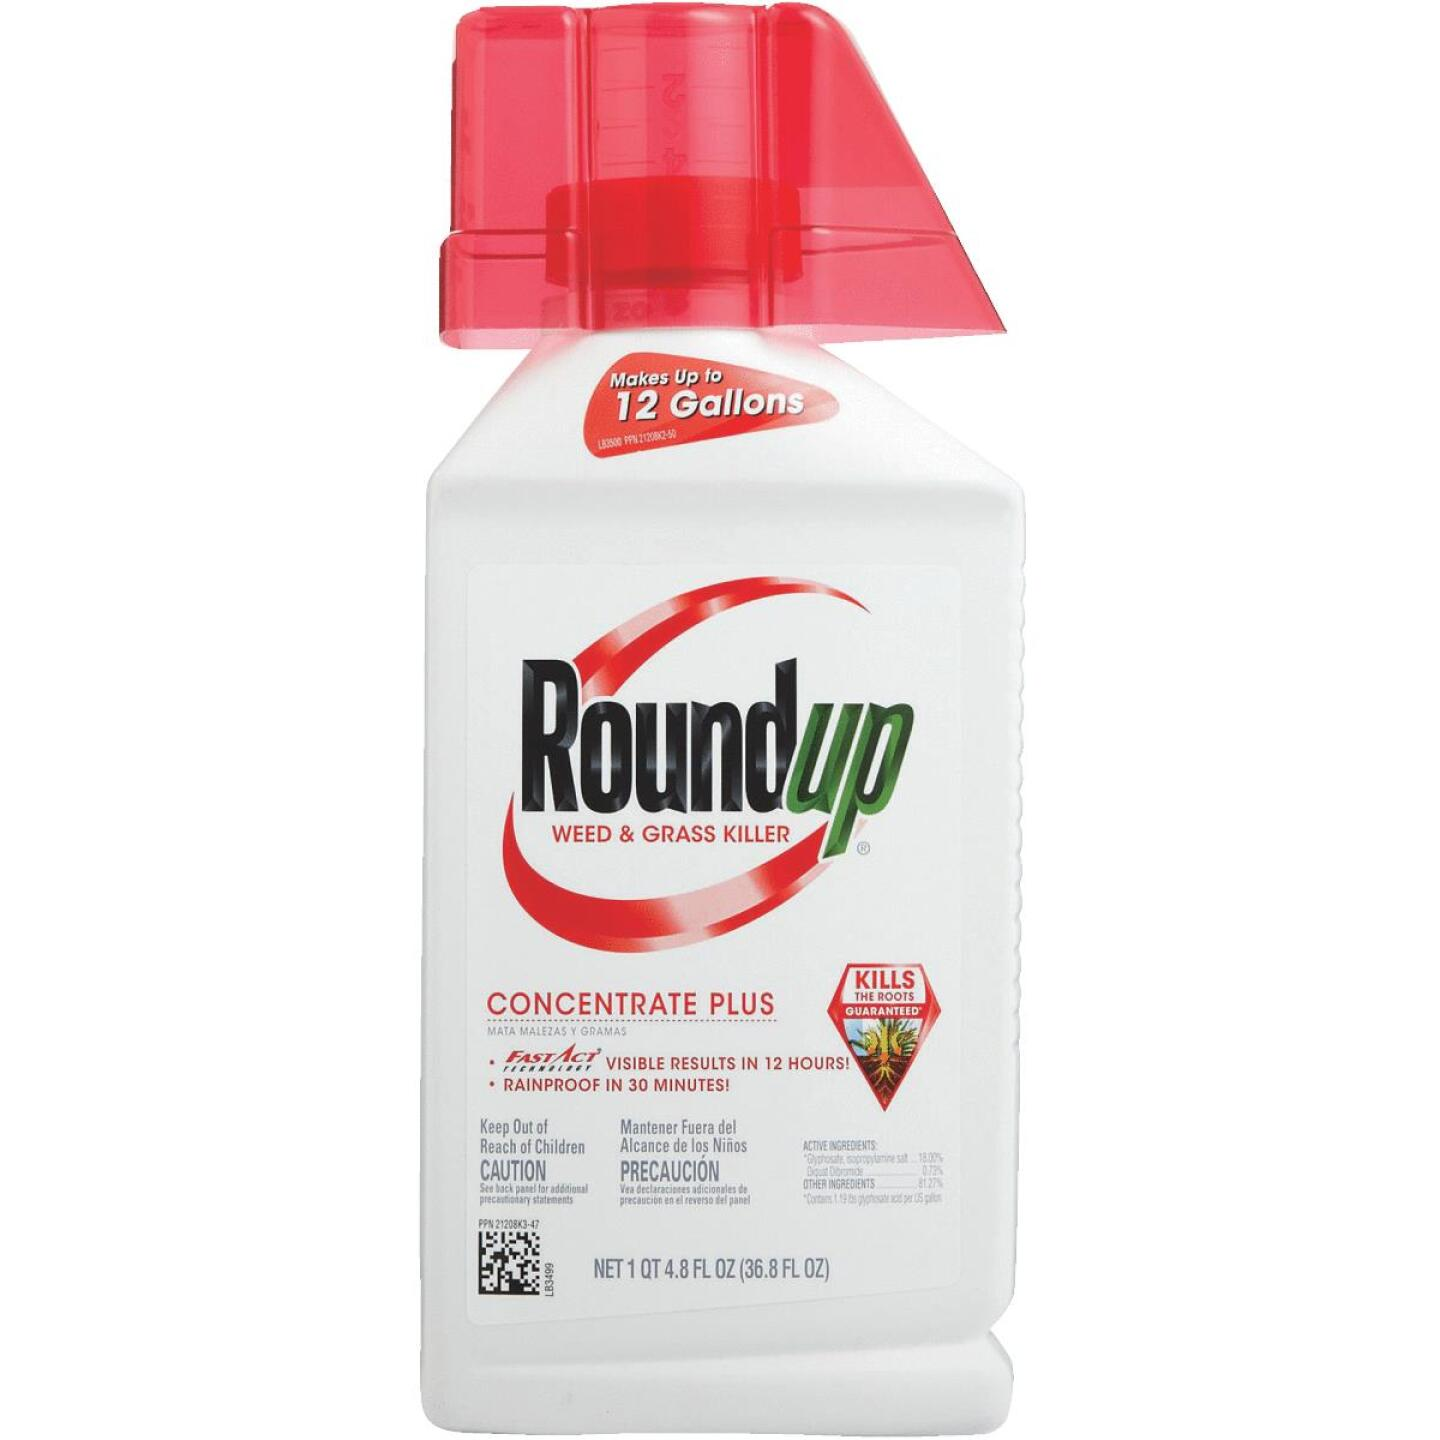 Roundup 36.8 Oz. Concentrate Plus Weed & Grass Killer Image 5